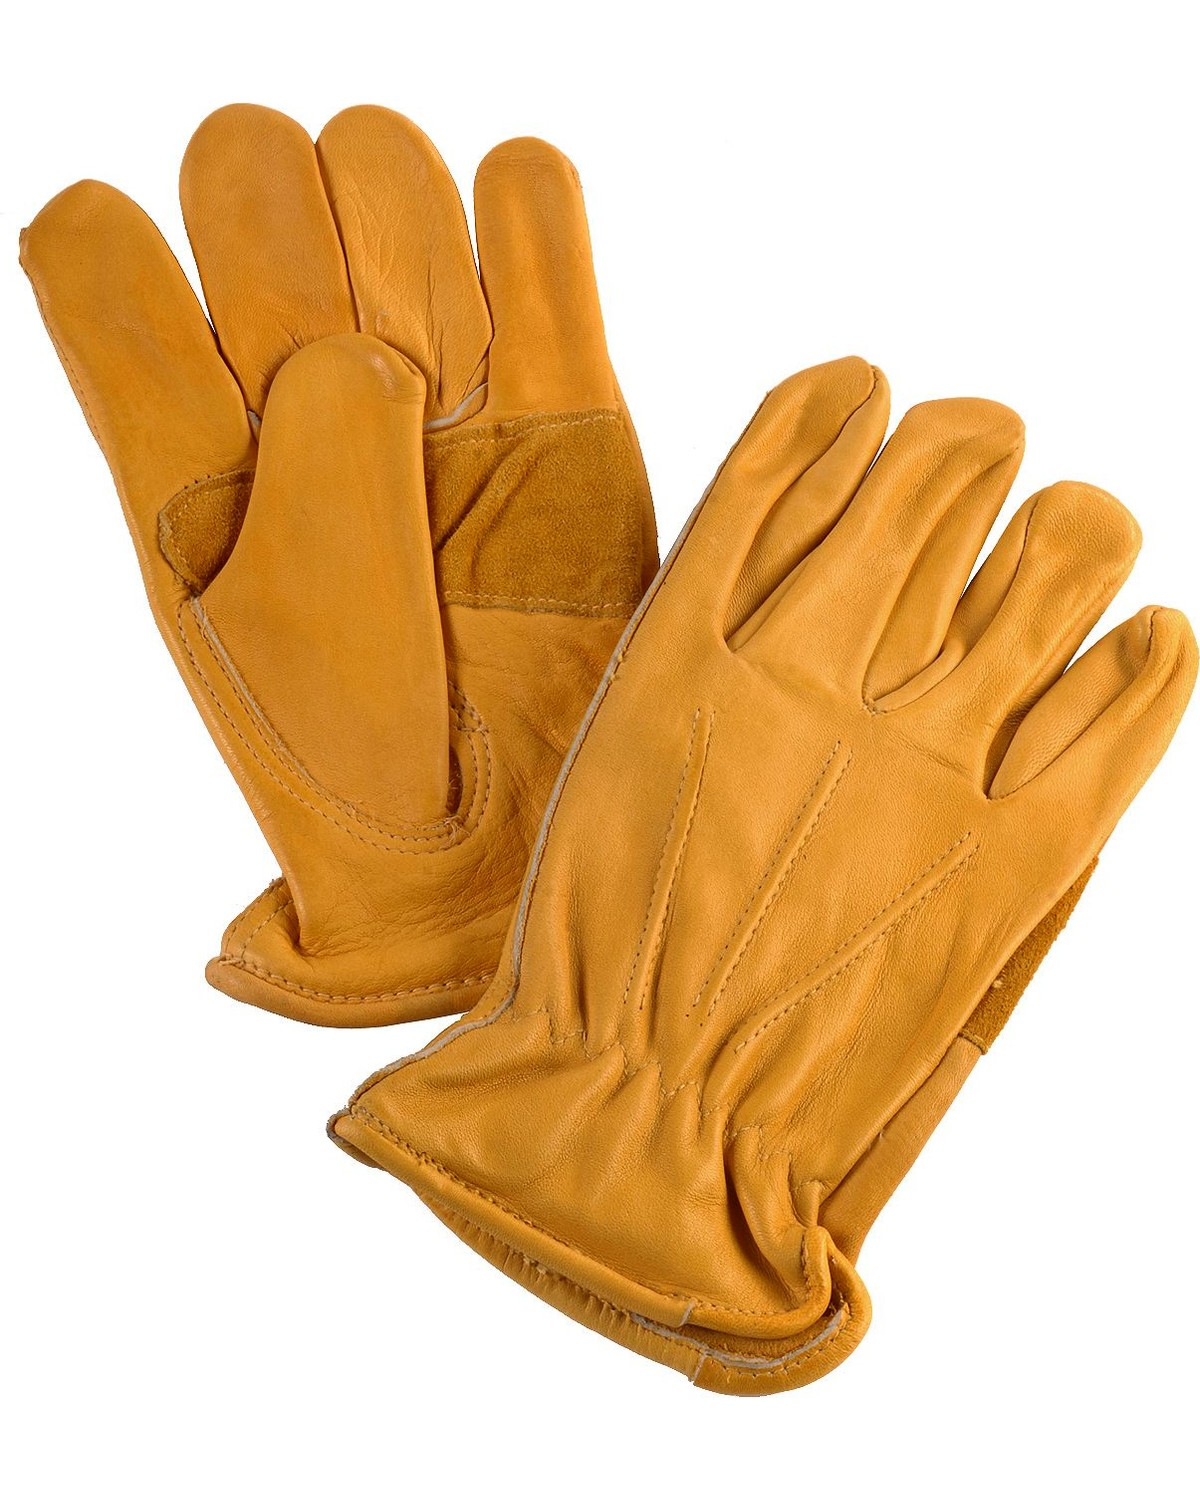 Justin leather work gloves -